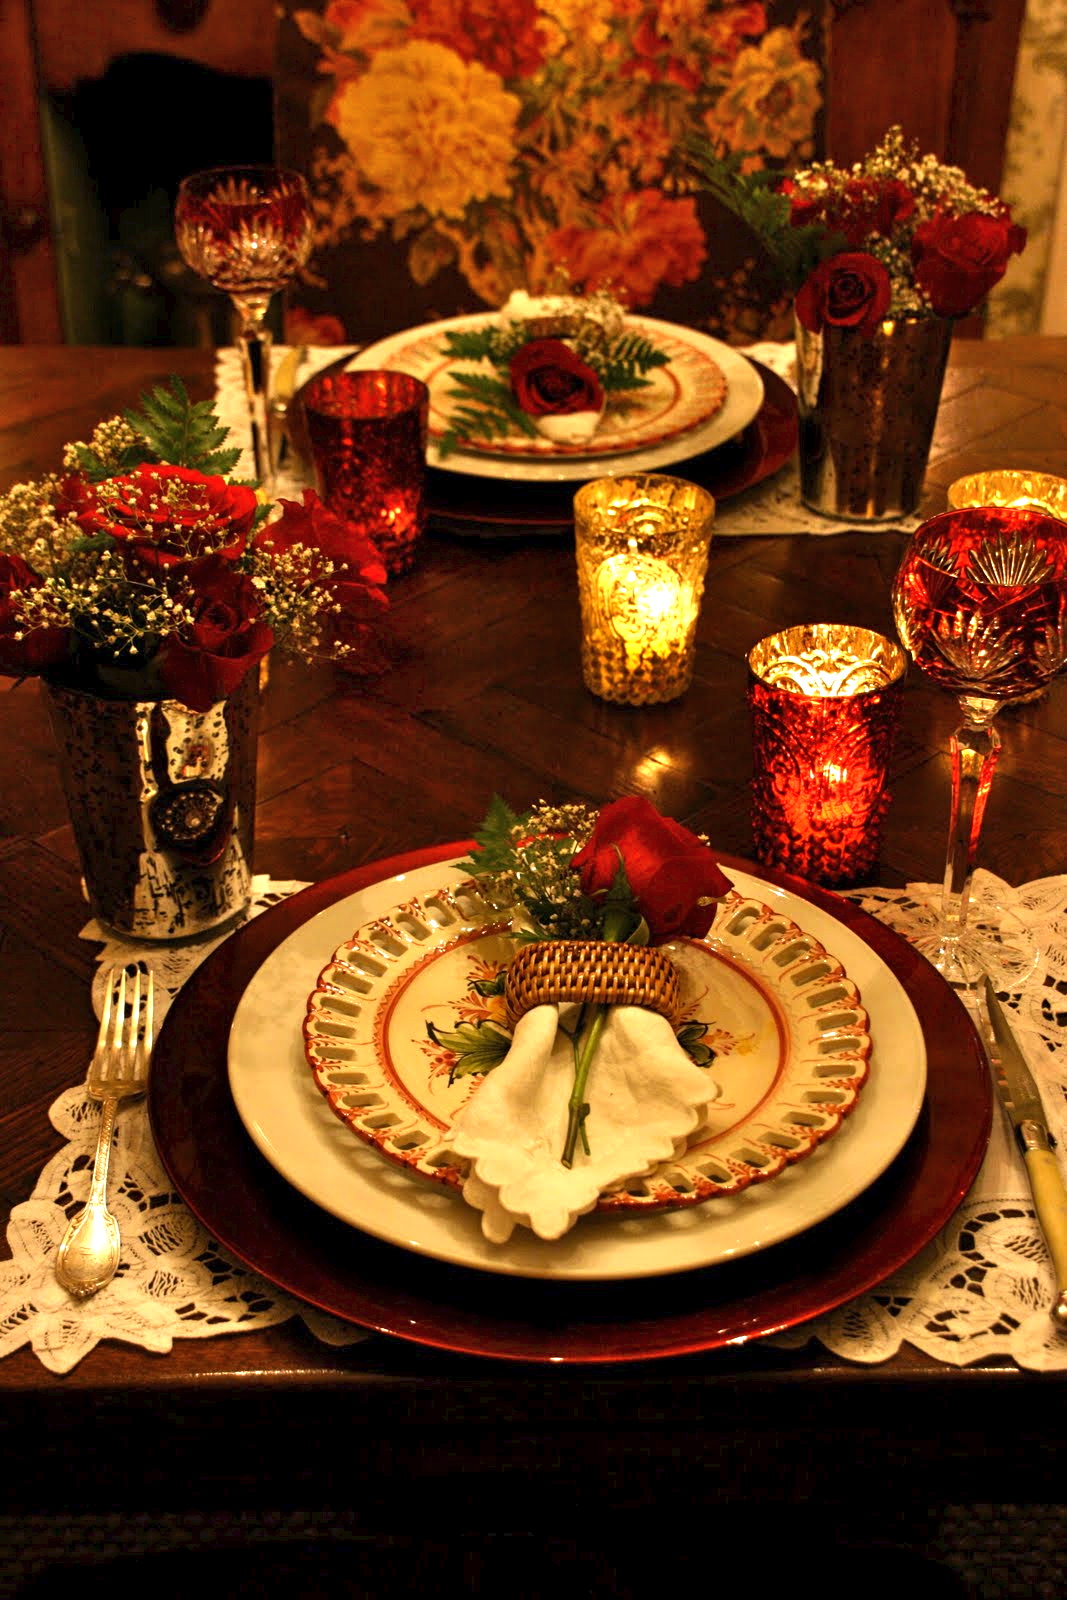 Romantic Dinner For Two Recipes: Vignette Design: Romantic Table For Two